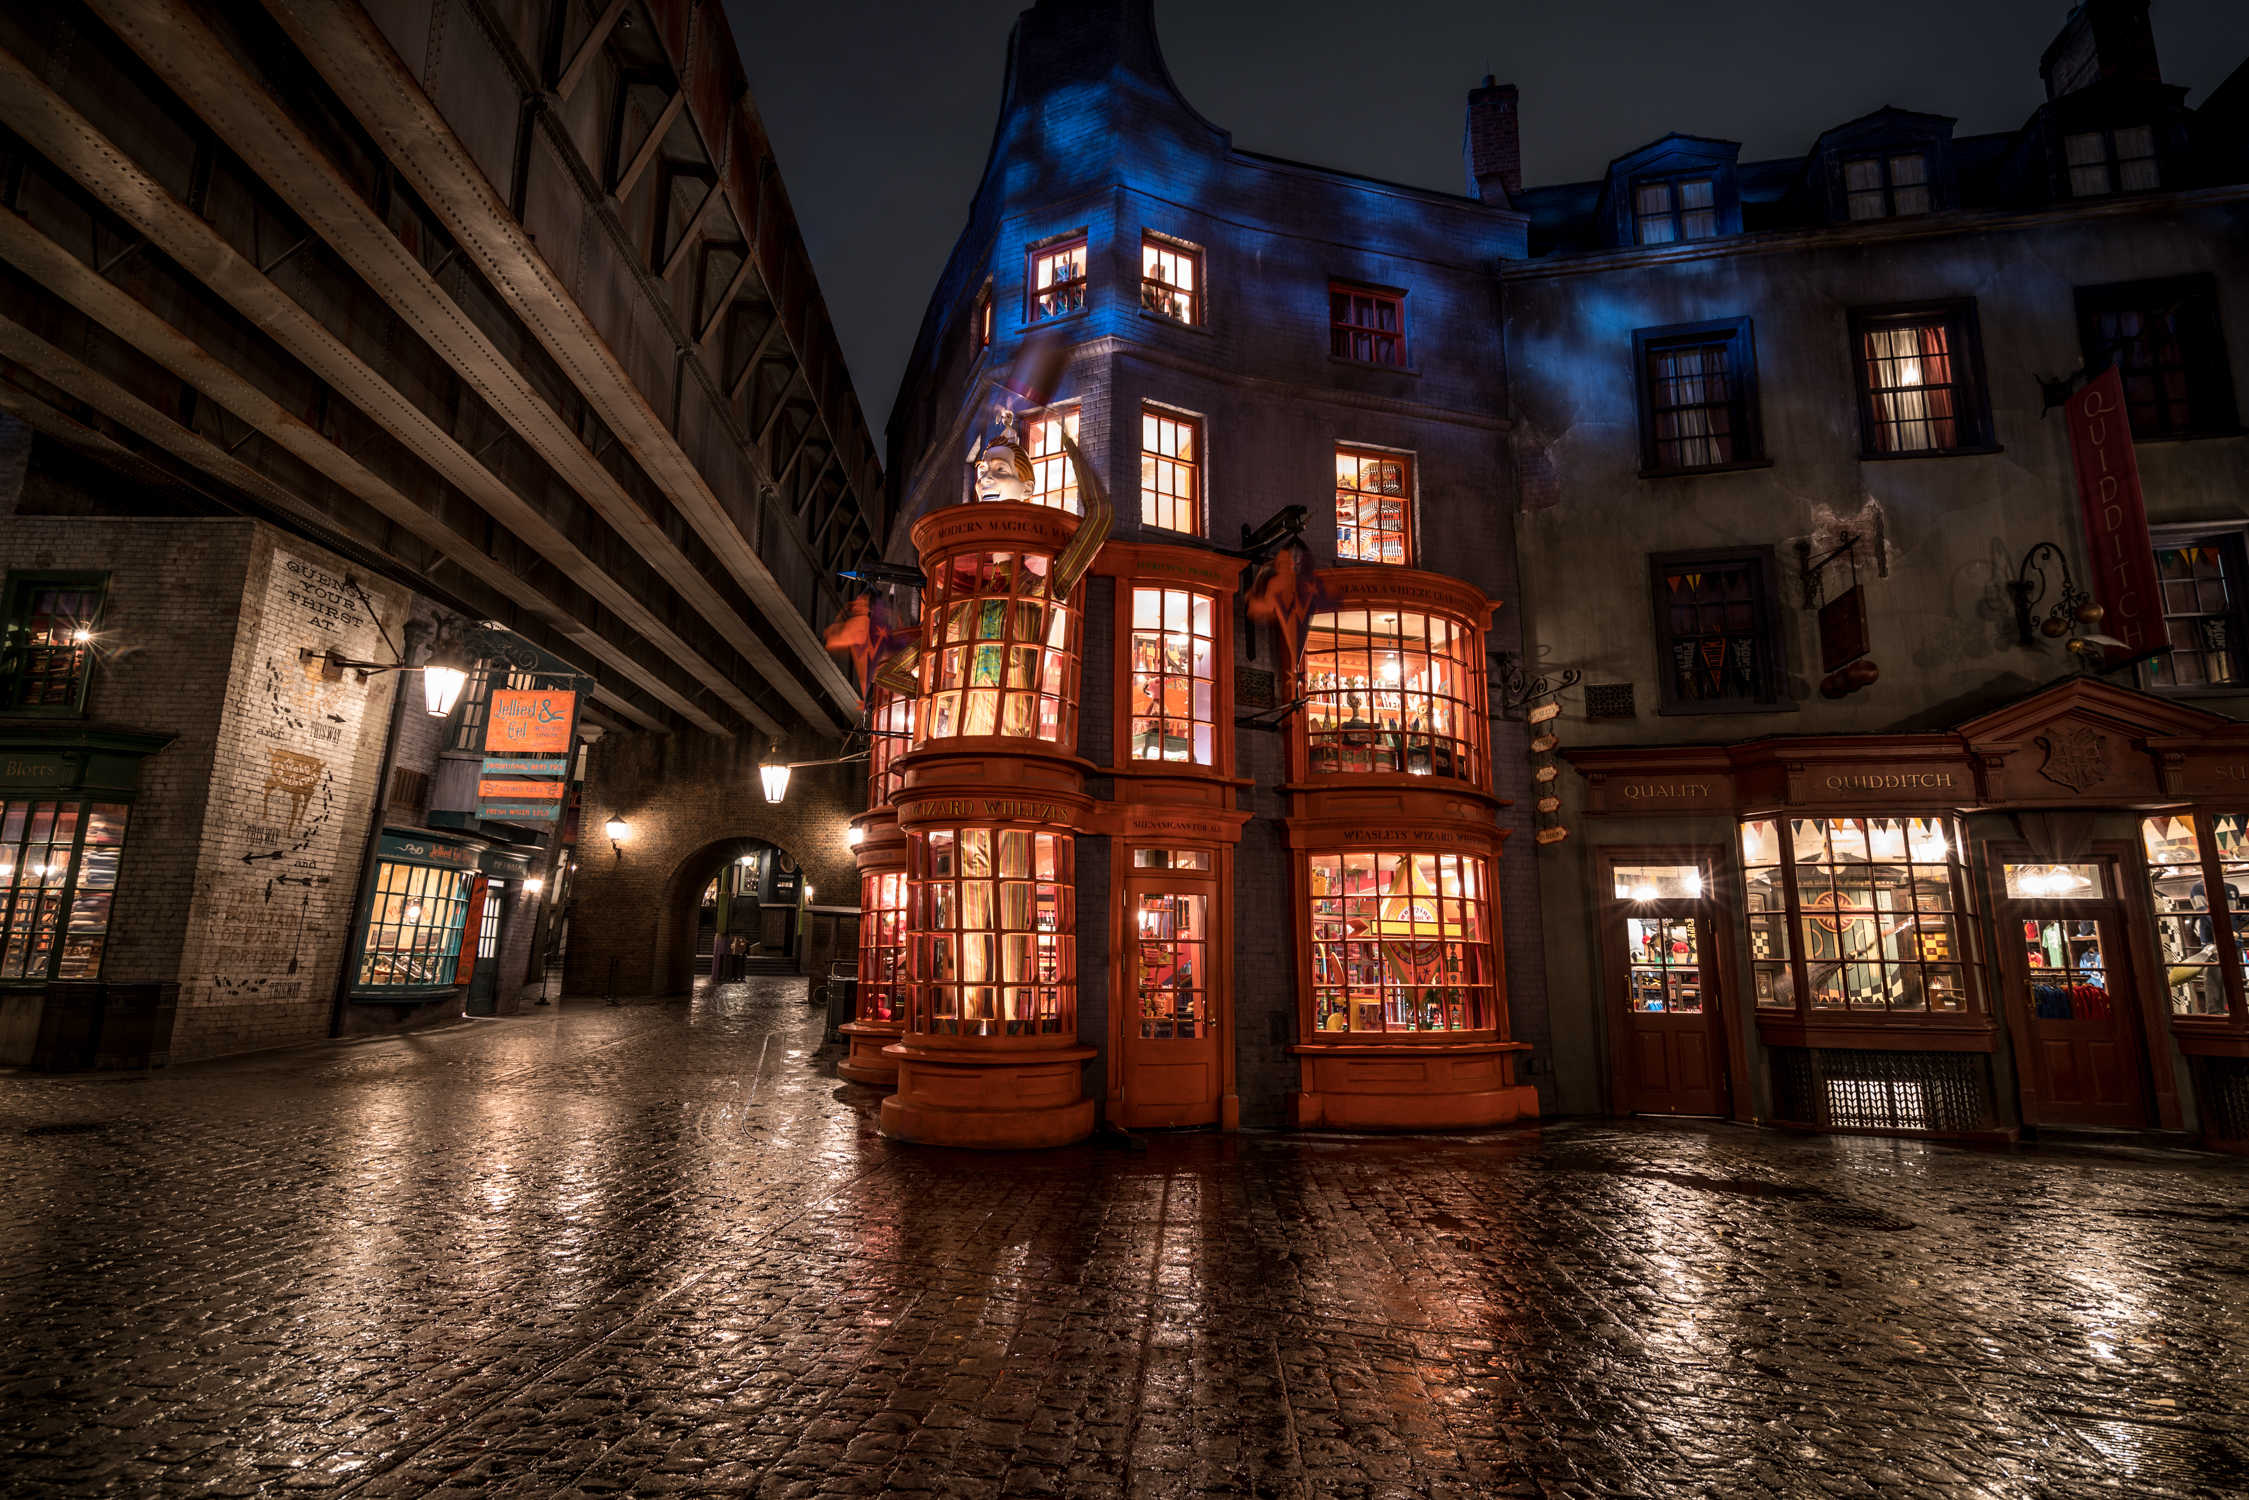 Top 5 Items from Weasley's Wizarding Wheezes in Diagon Alley at Universal Orlando